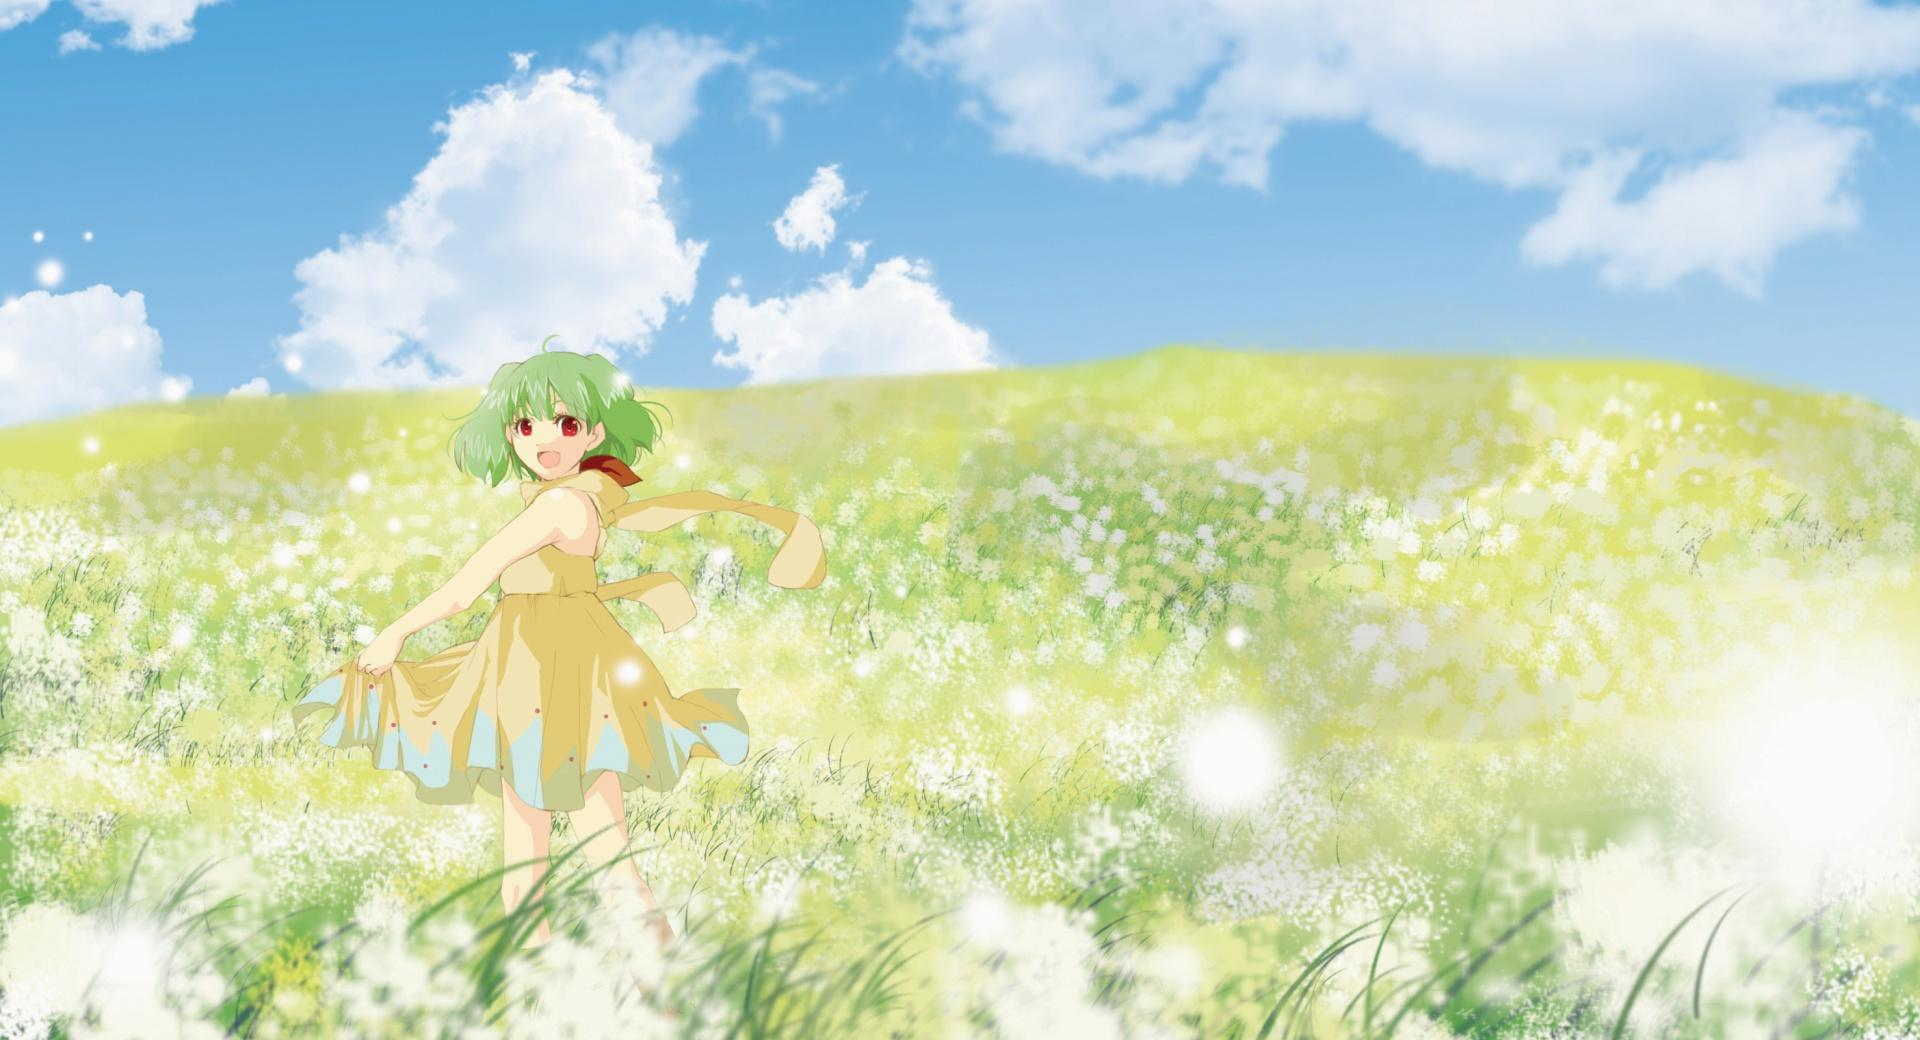 Anime Girl In Flower Field wallpapers HD quality